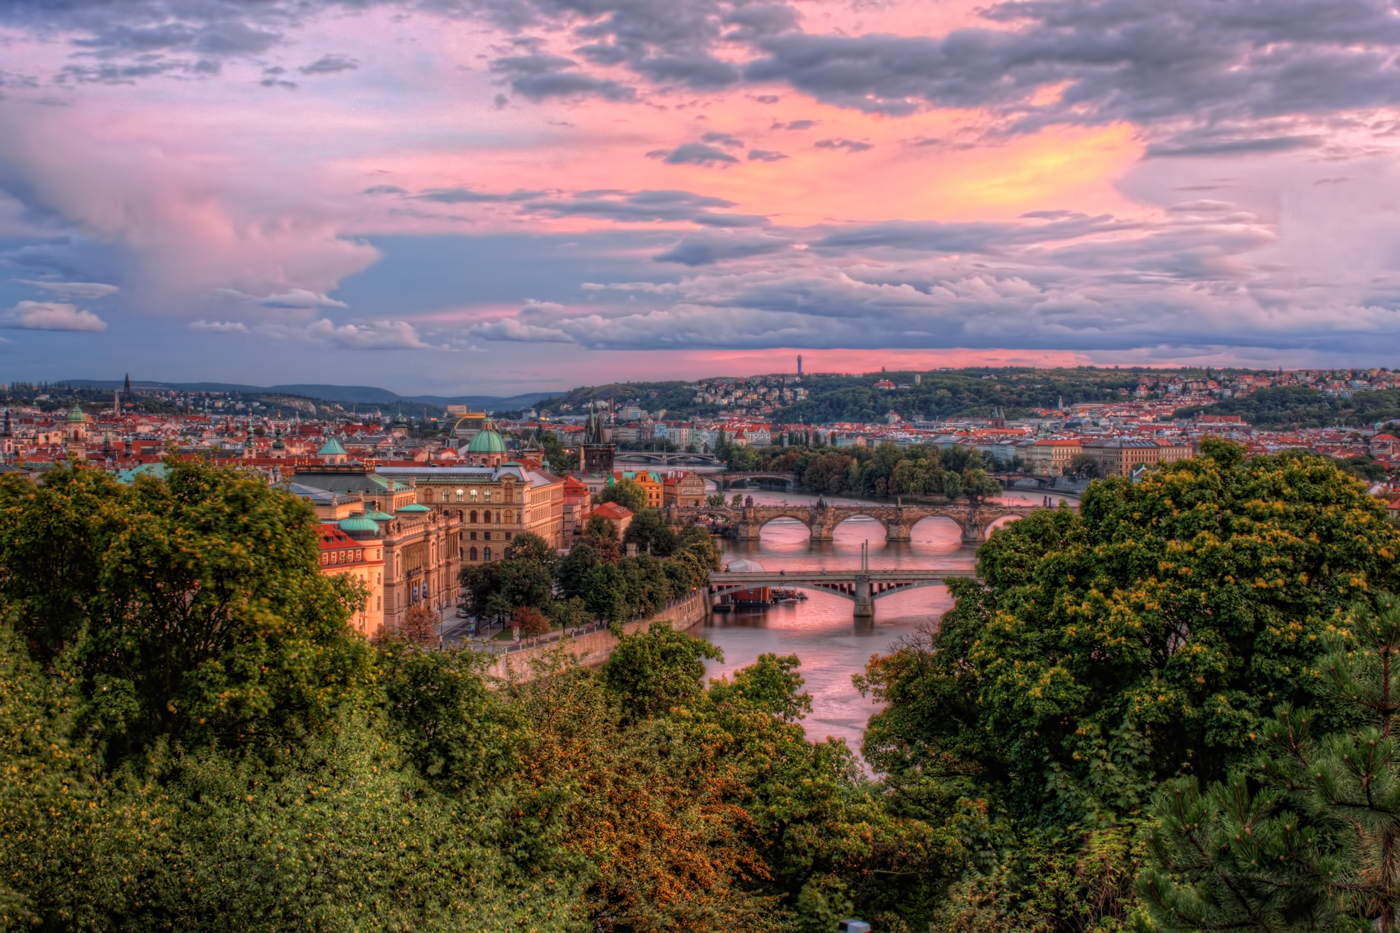 Pink Sky over Vlatava in Prague